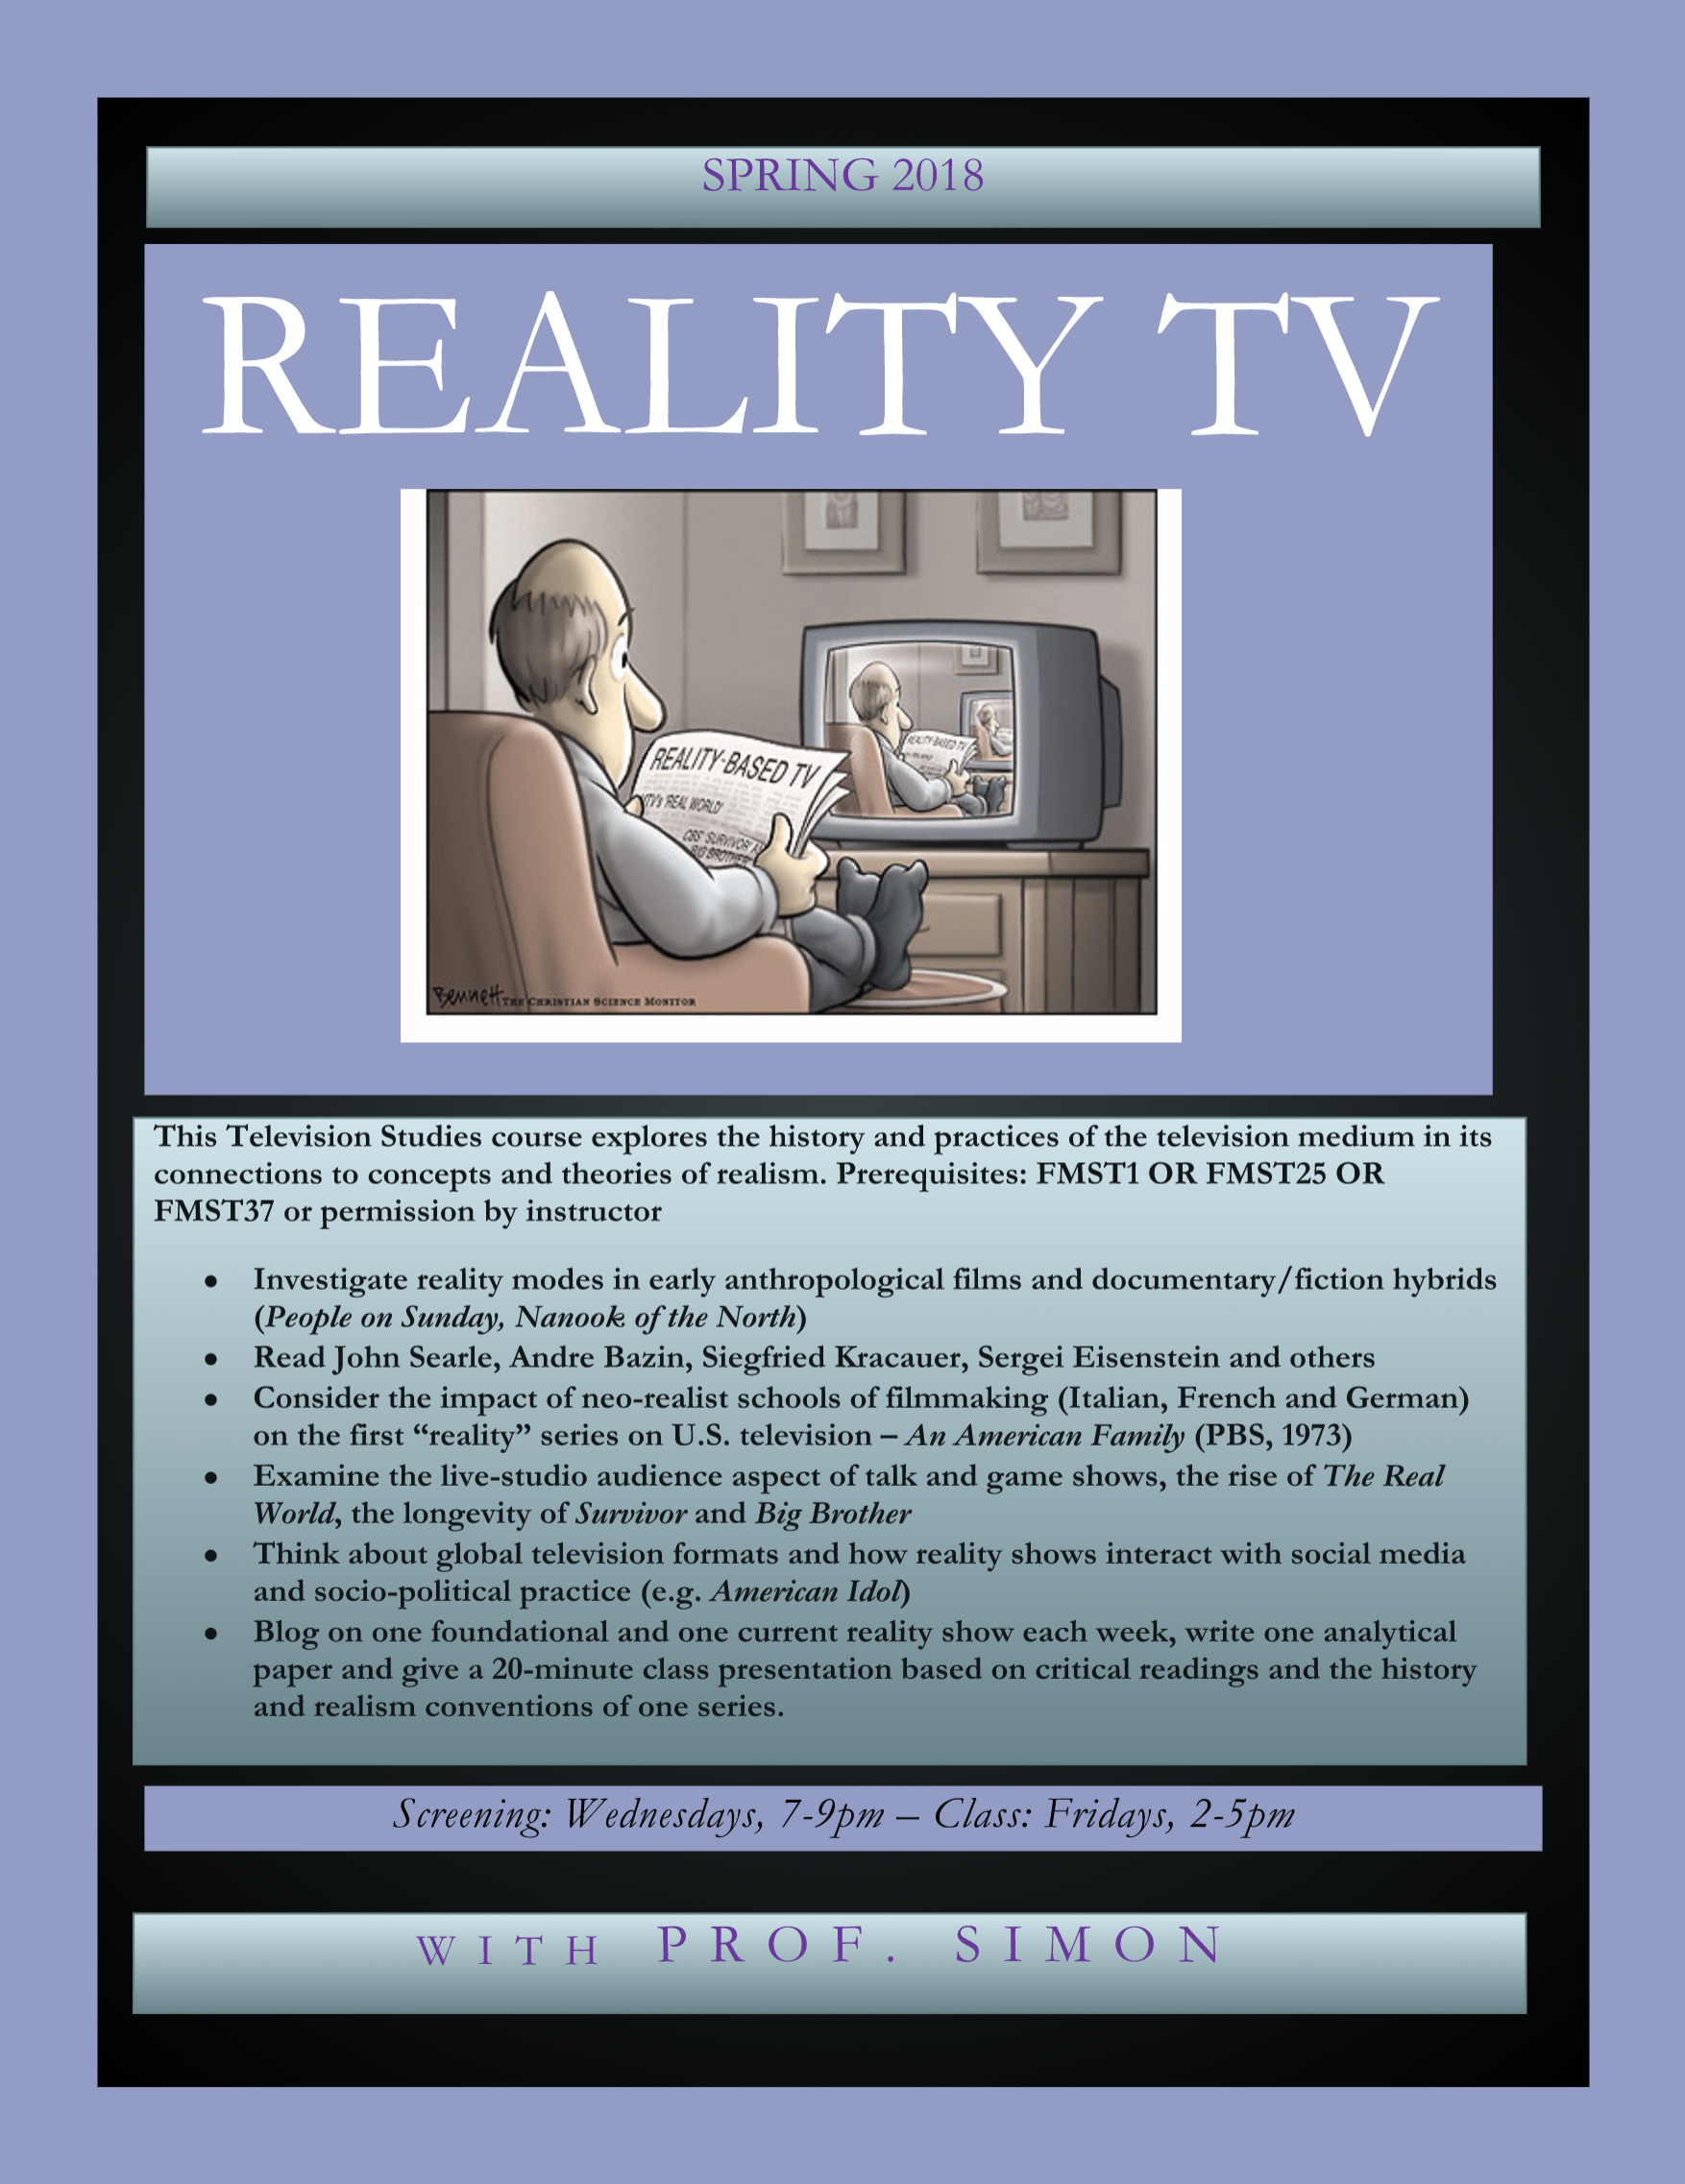 poster advertising reality TV course. information provided in text below.